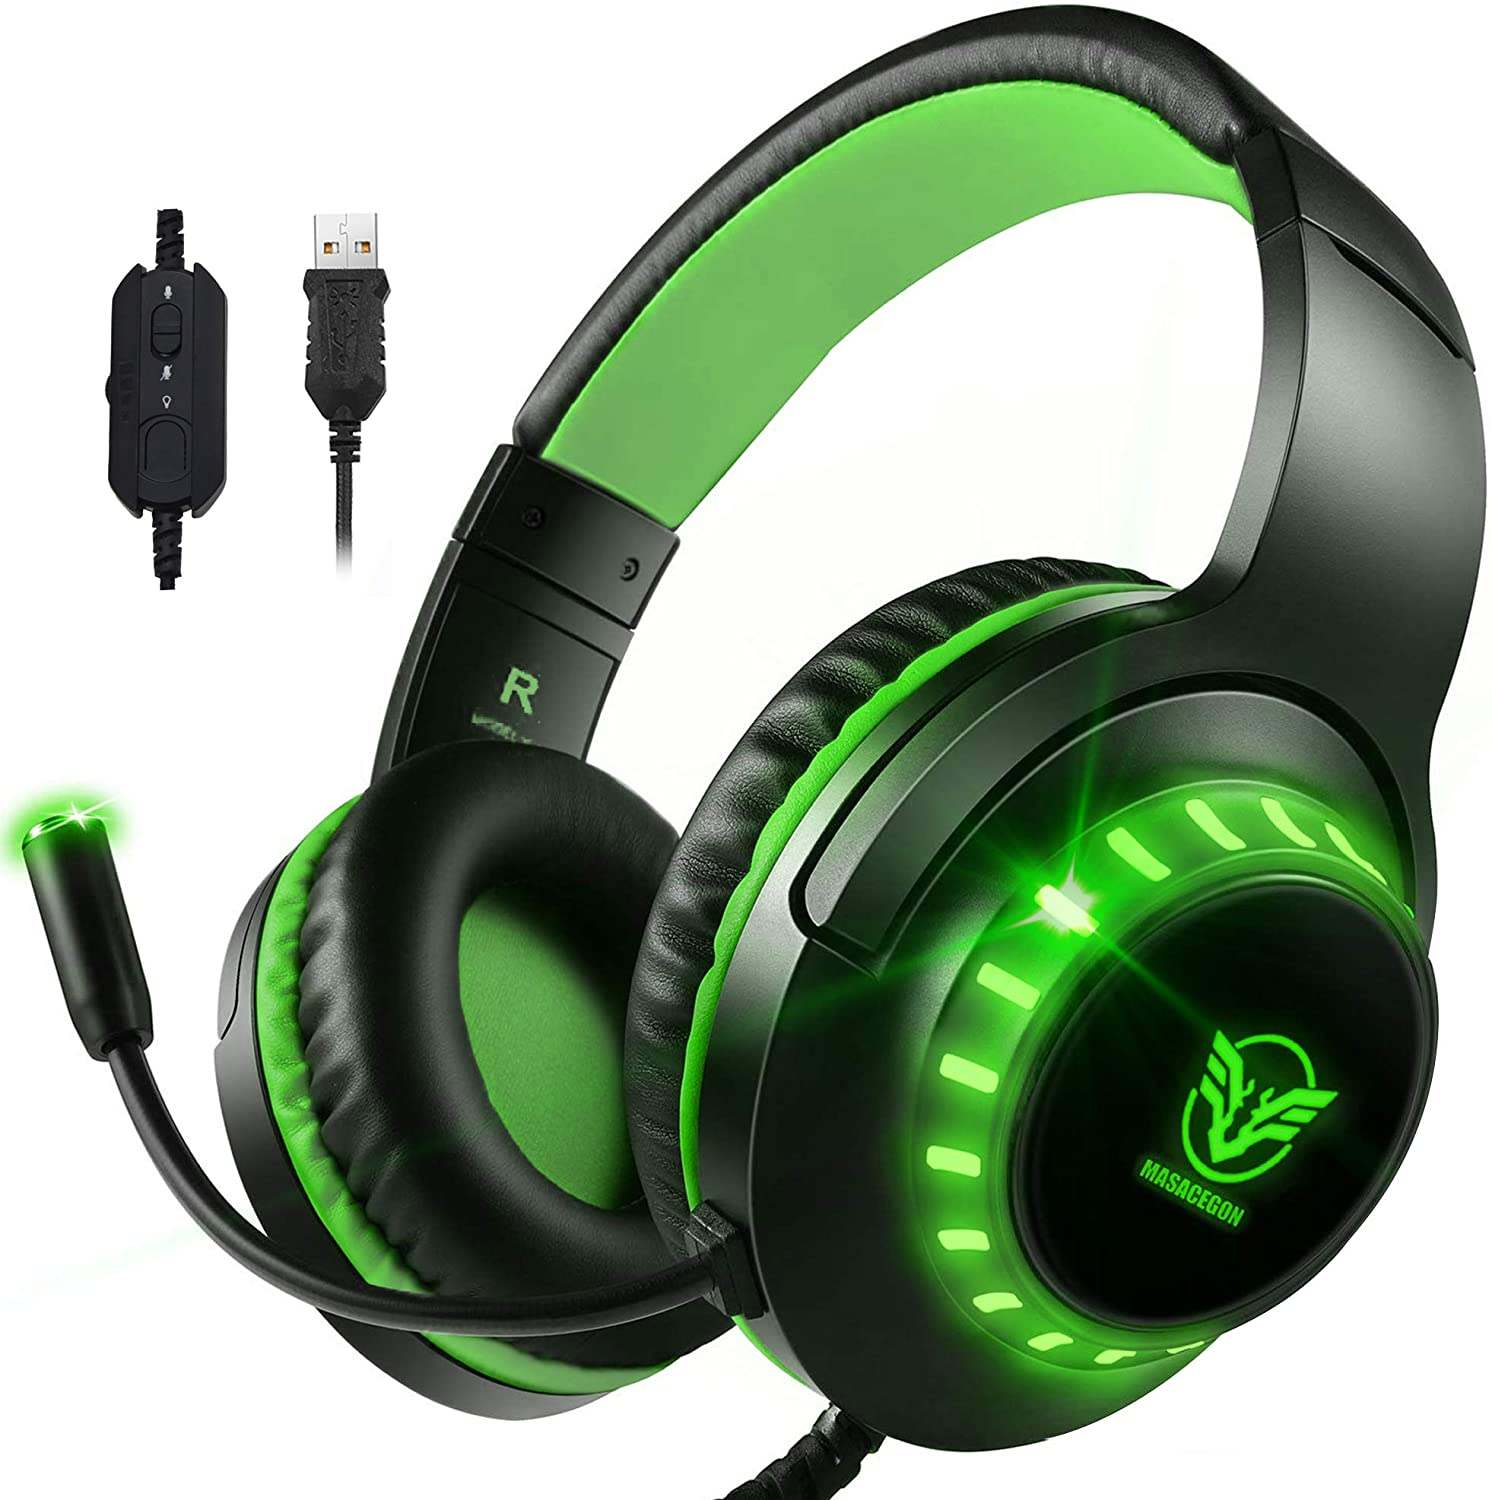 Pacrate 7.1 USB Stereo Gaming Headset with Microphone Noise Cancelling Surround Sound USB Headphones with LED Lights for PC Laptop Mac Wired Over-Ear Headset for Kids Adults(Black Green)